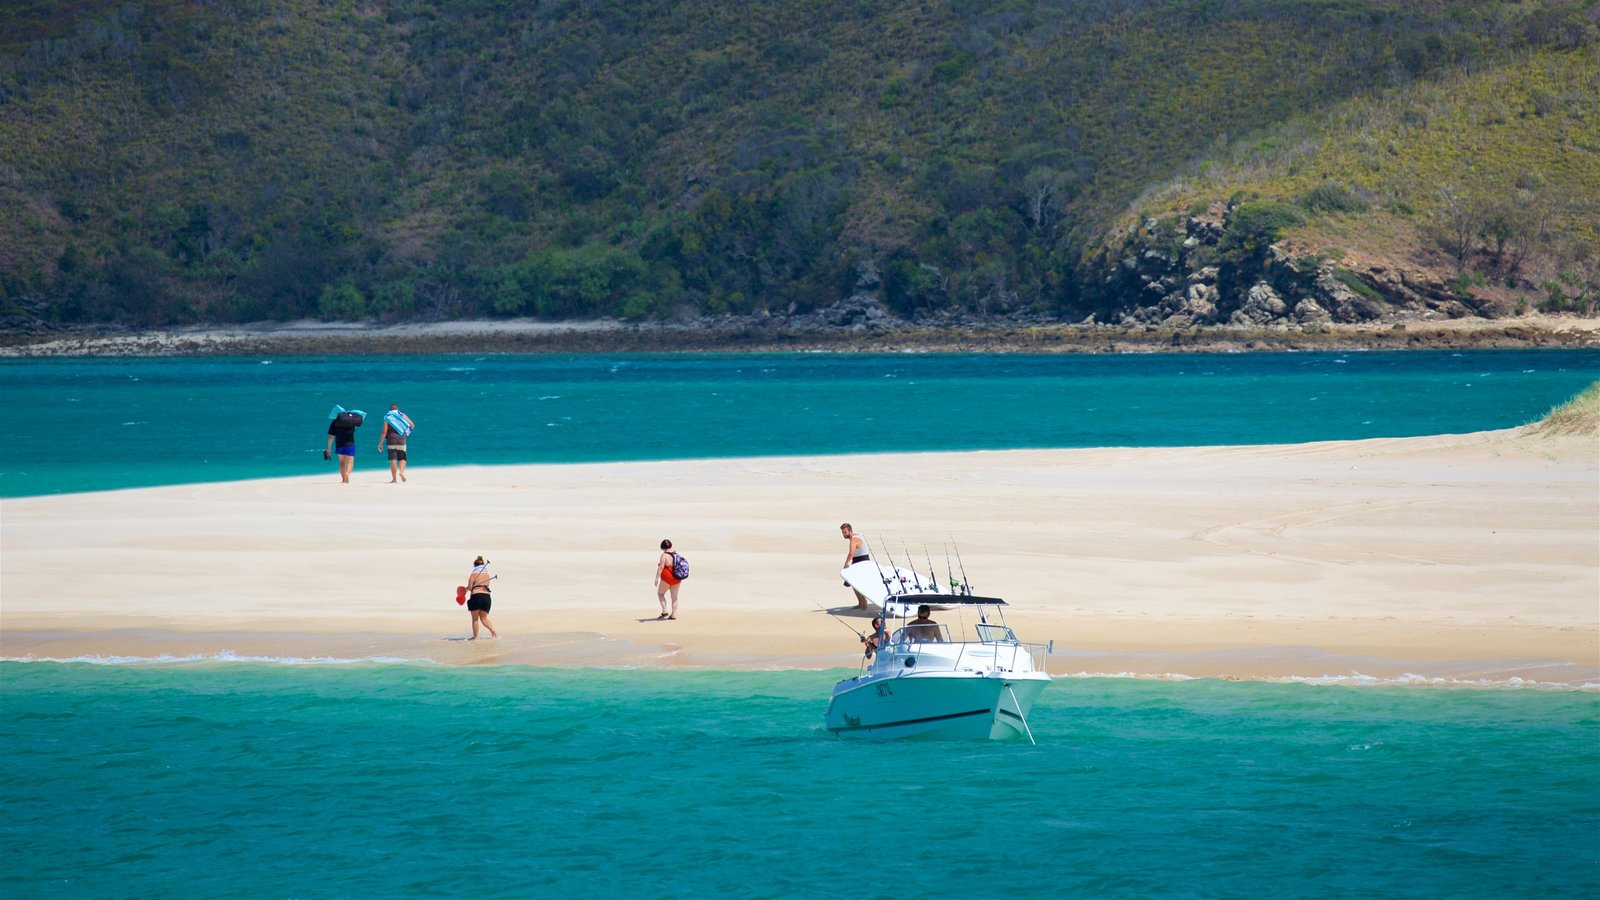 great keppel island Great keppel island adventures is part of the great barrier reef off rockhampton queensland offering water sports - jet ski's, fishing, kayaking, snorkelling 7 days a week.